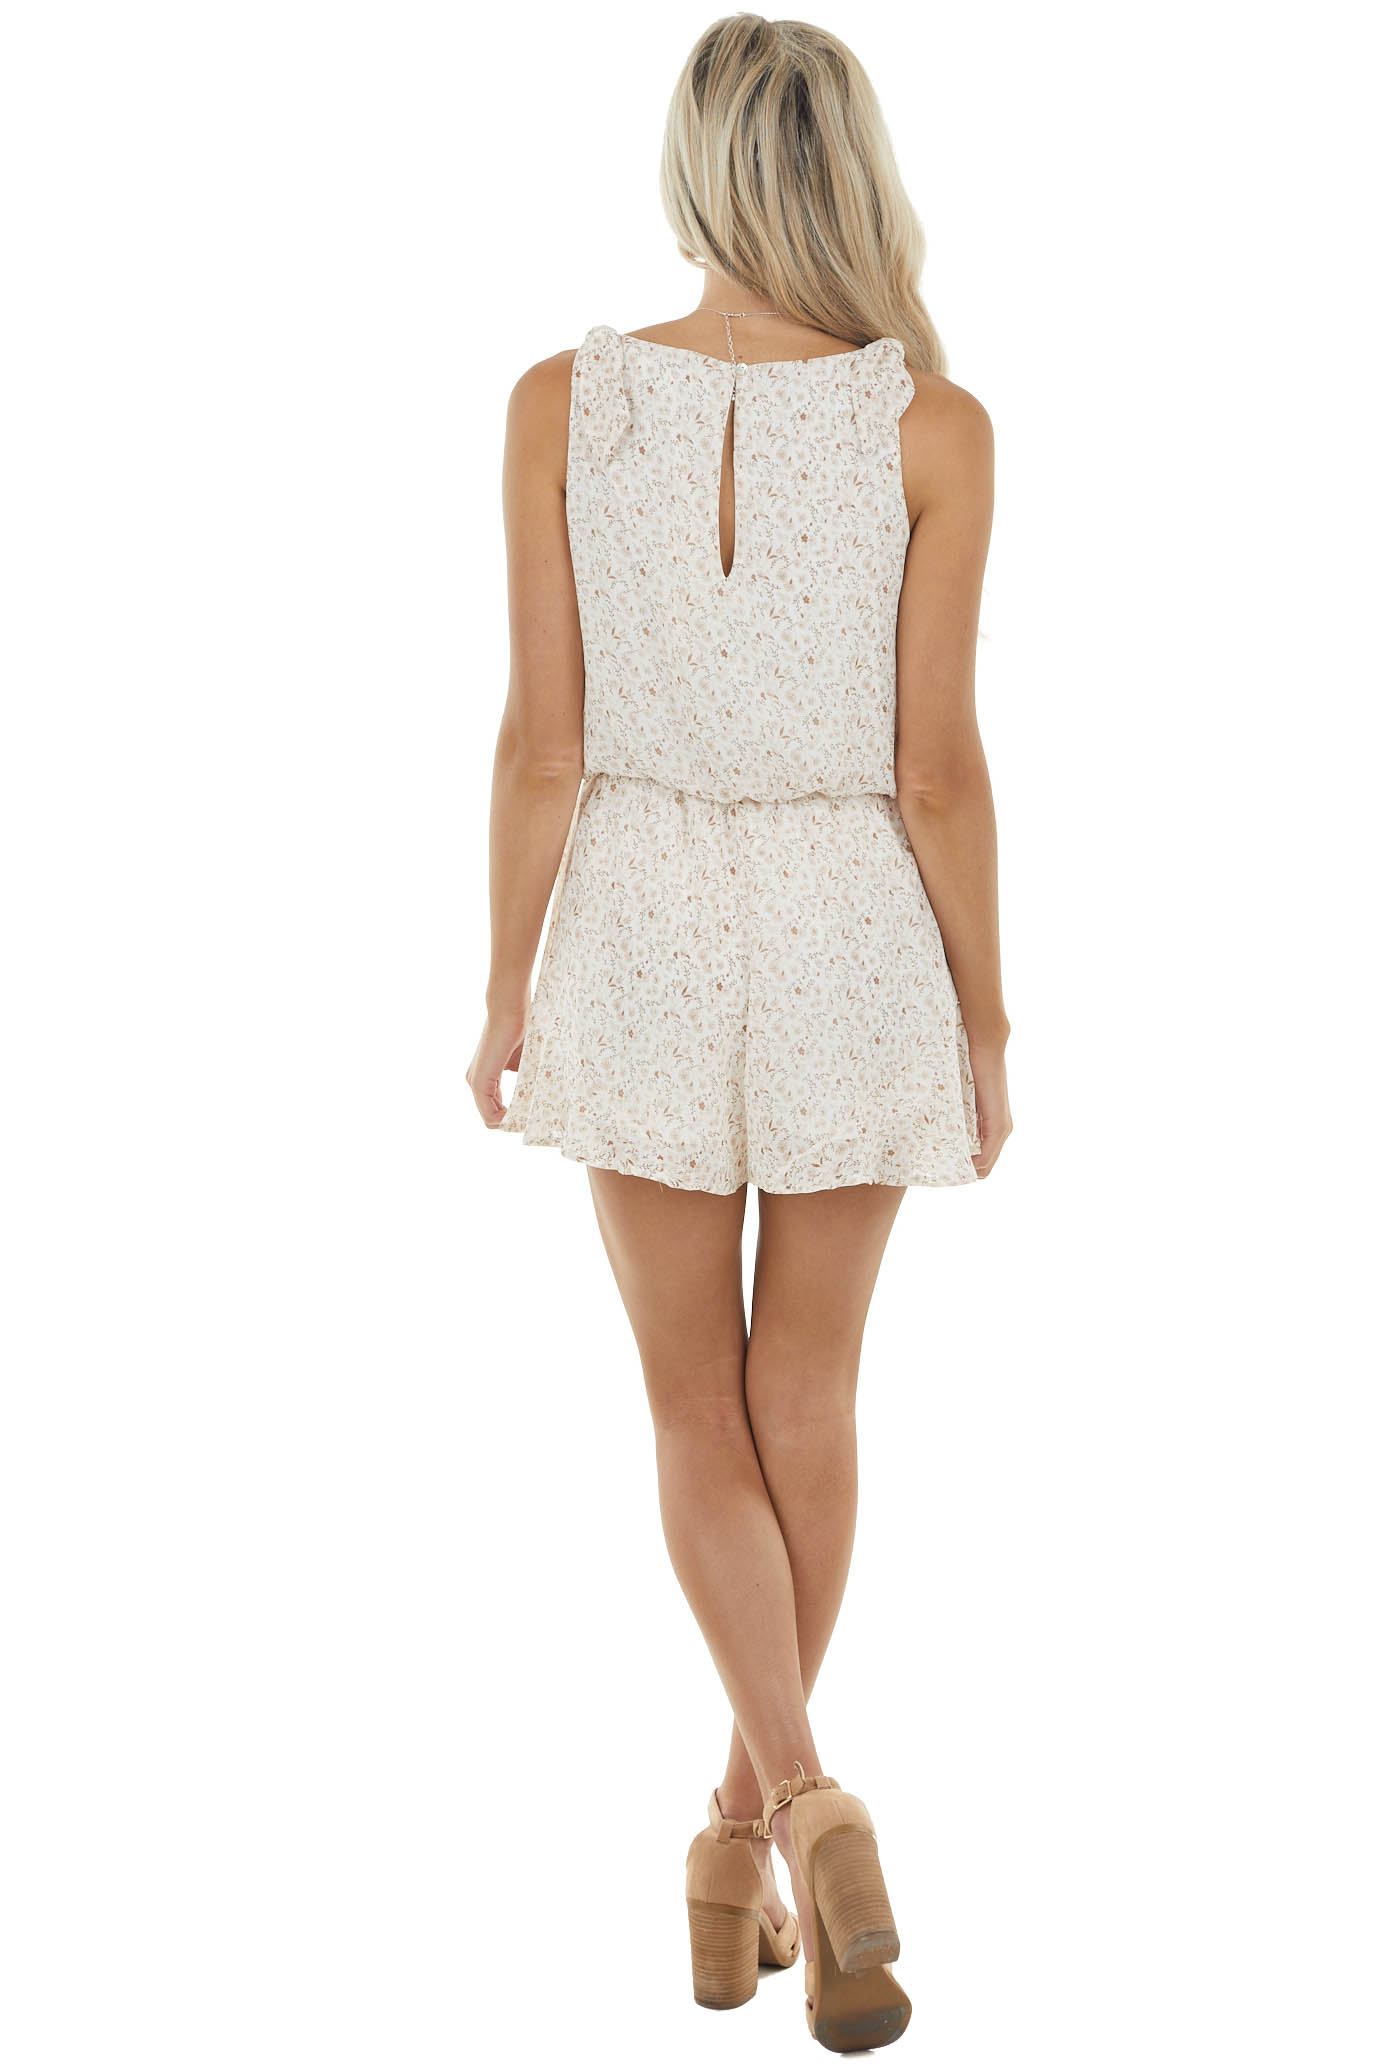 Champagne Ditsy Floral Sleeveless Romper with Back Keyhole